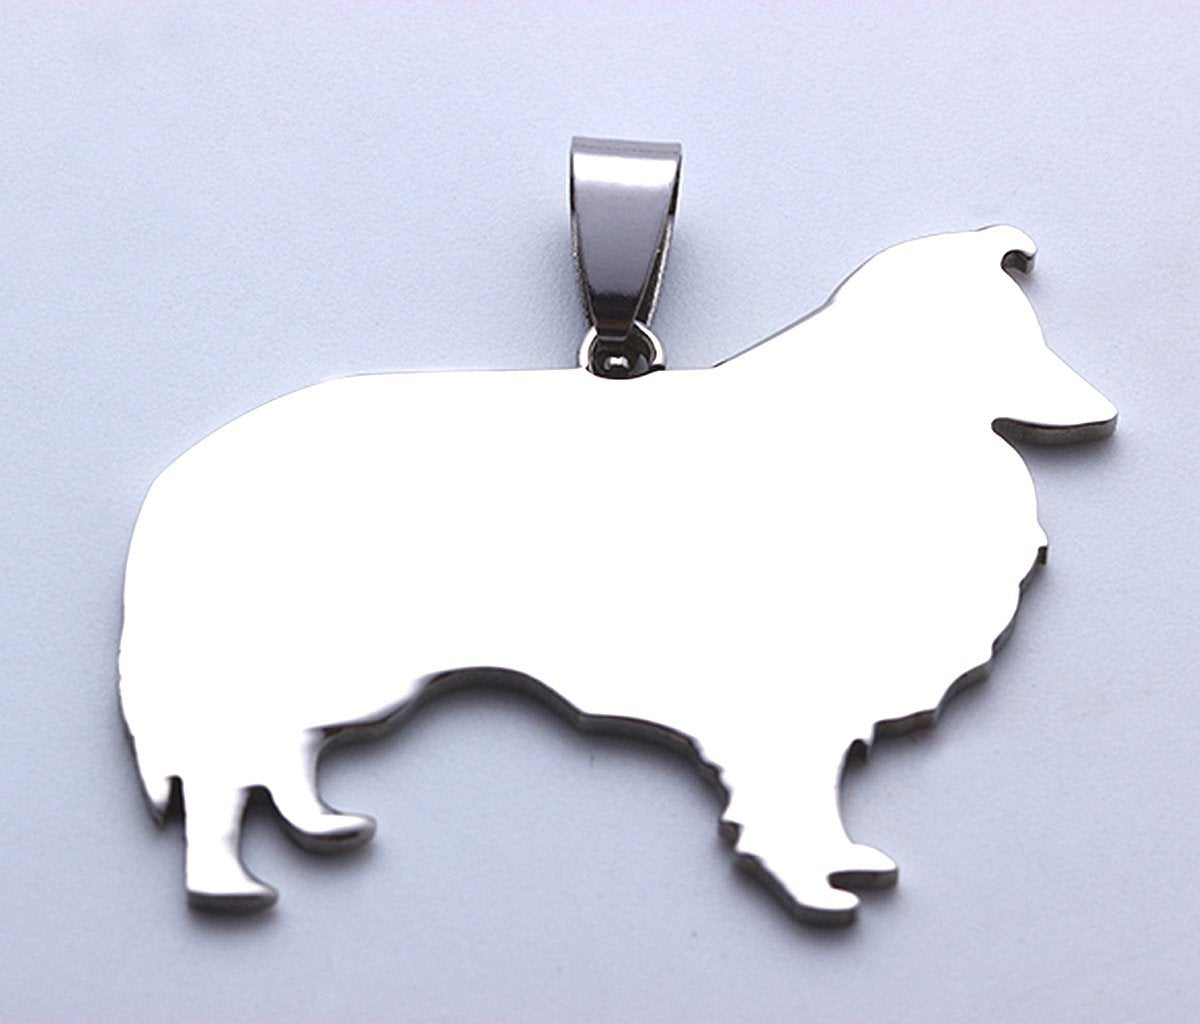 Stainless Steel Sheltie Scotland Shepherd Shetland Miniature Collie Silhouette Pet Dog Tag Breed Collar Charm Pendant Necklace